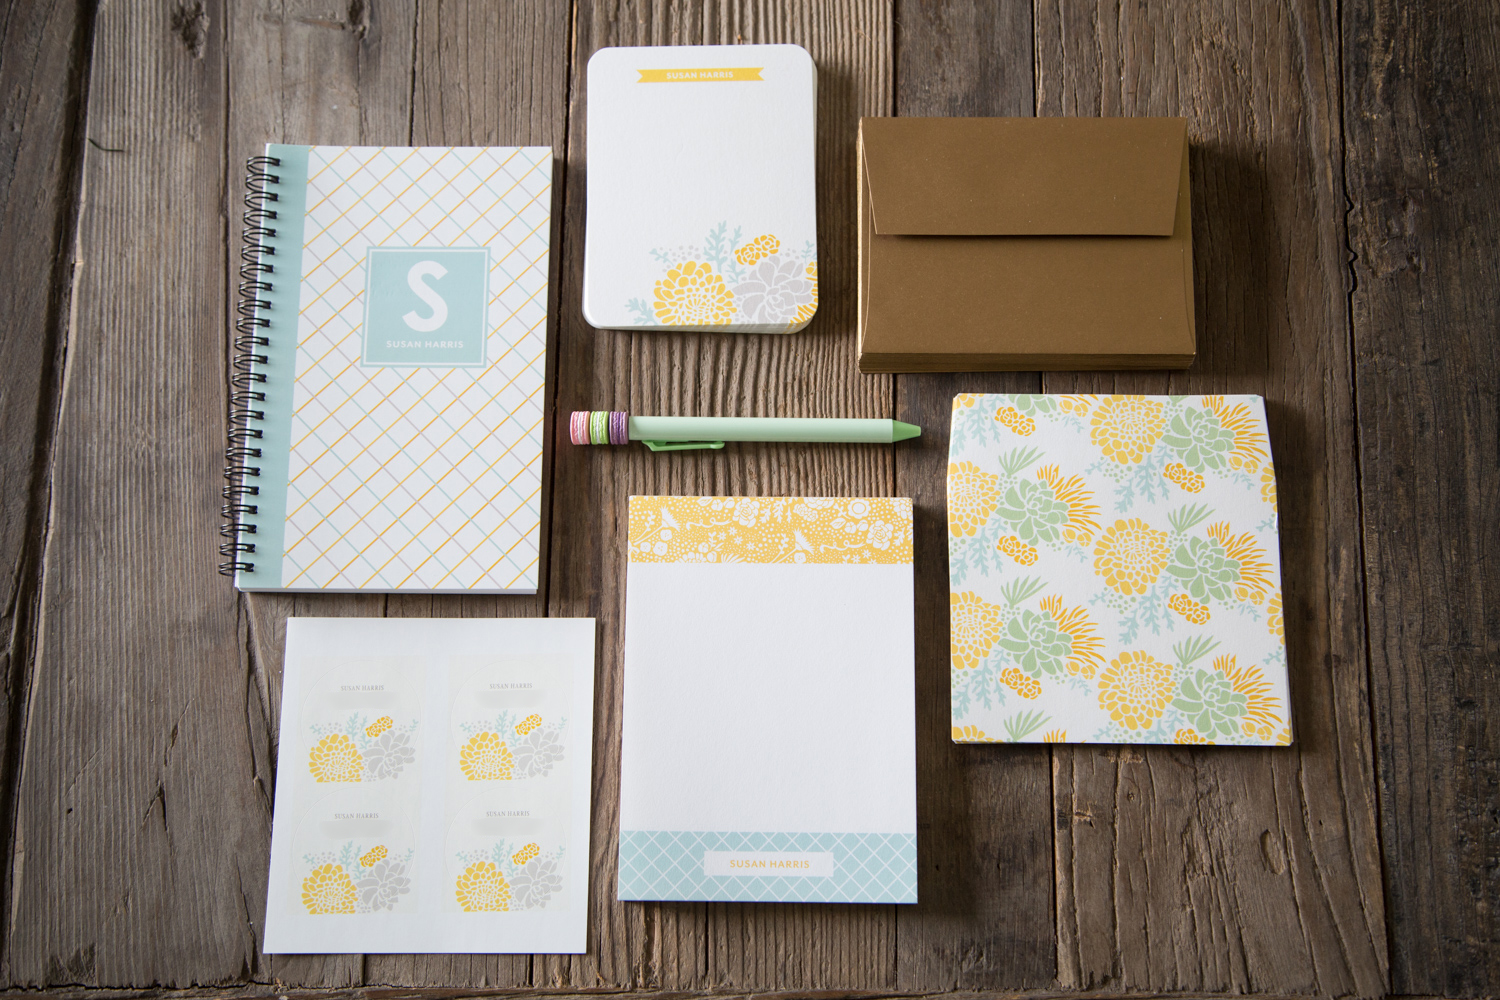 Personalized Stationary Set from Tiny Prints